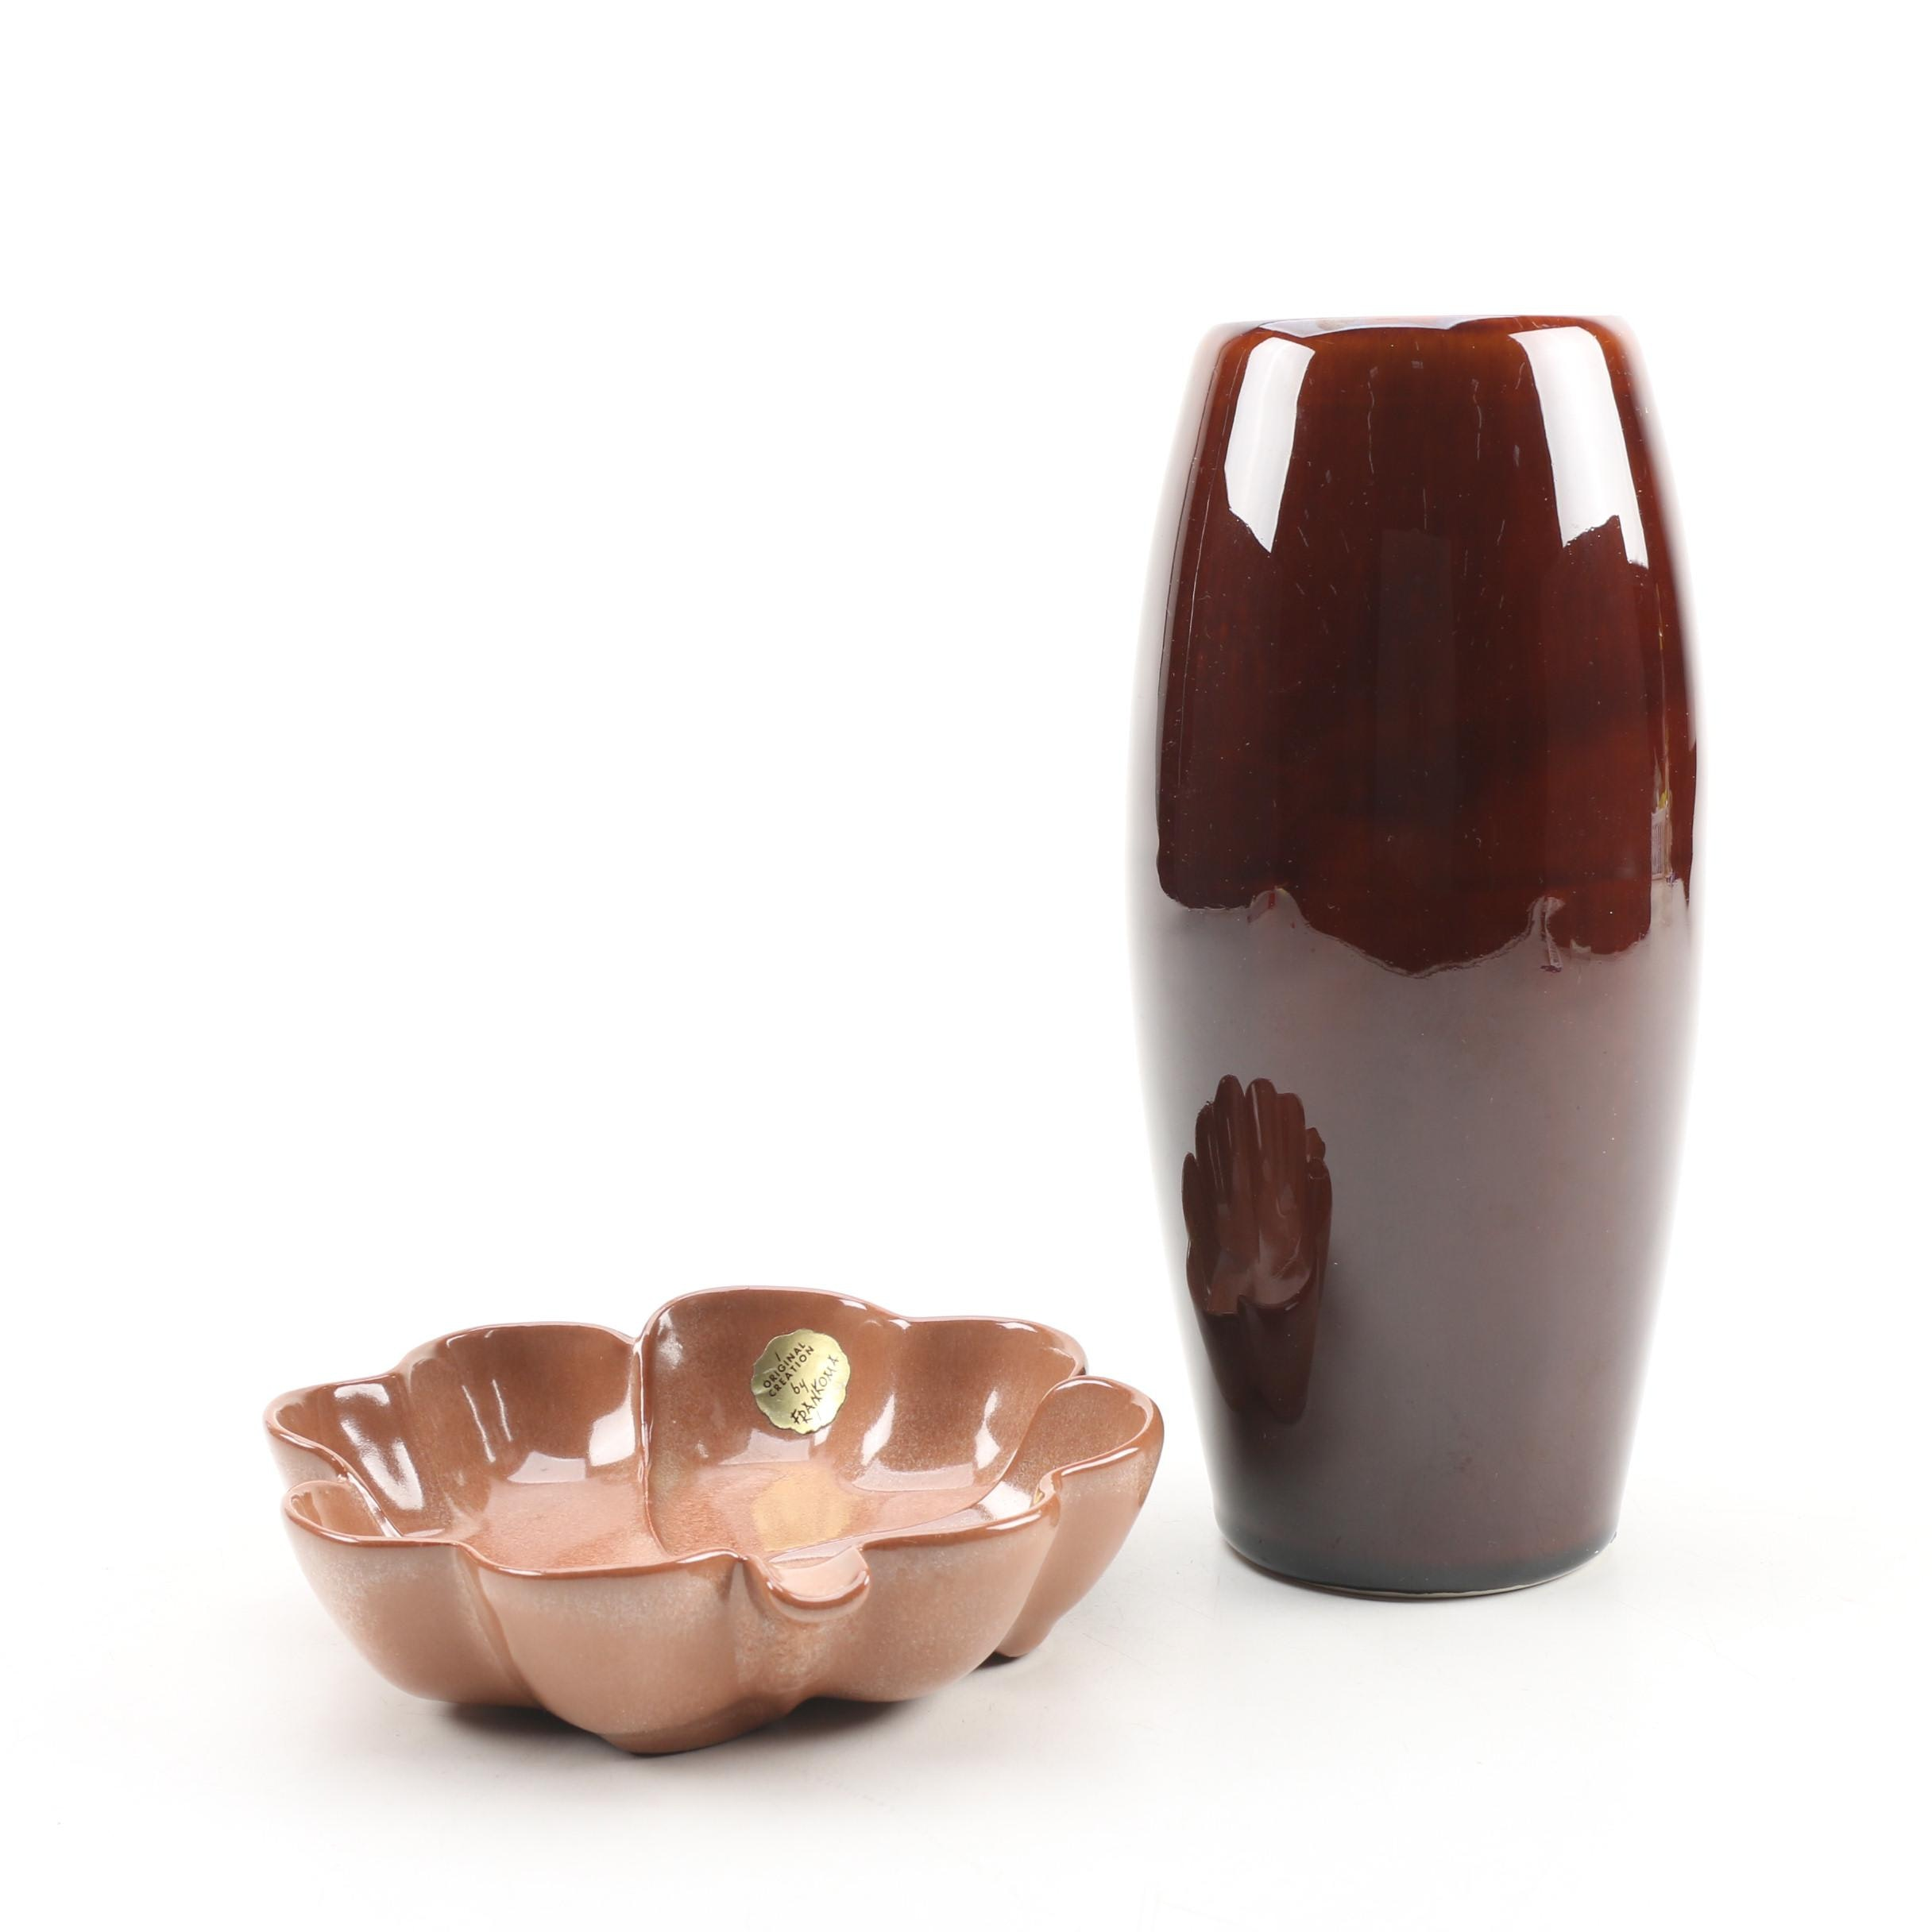 Frankoma Four Leaf Clover Ashtray with Brown Ceramic Vase, Mid/Late 20th Century